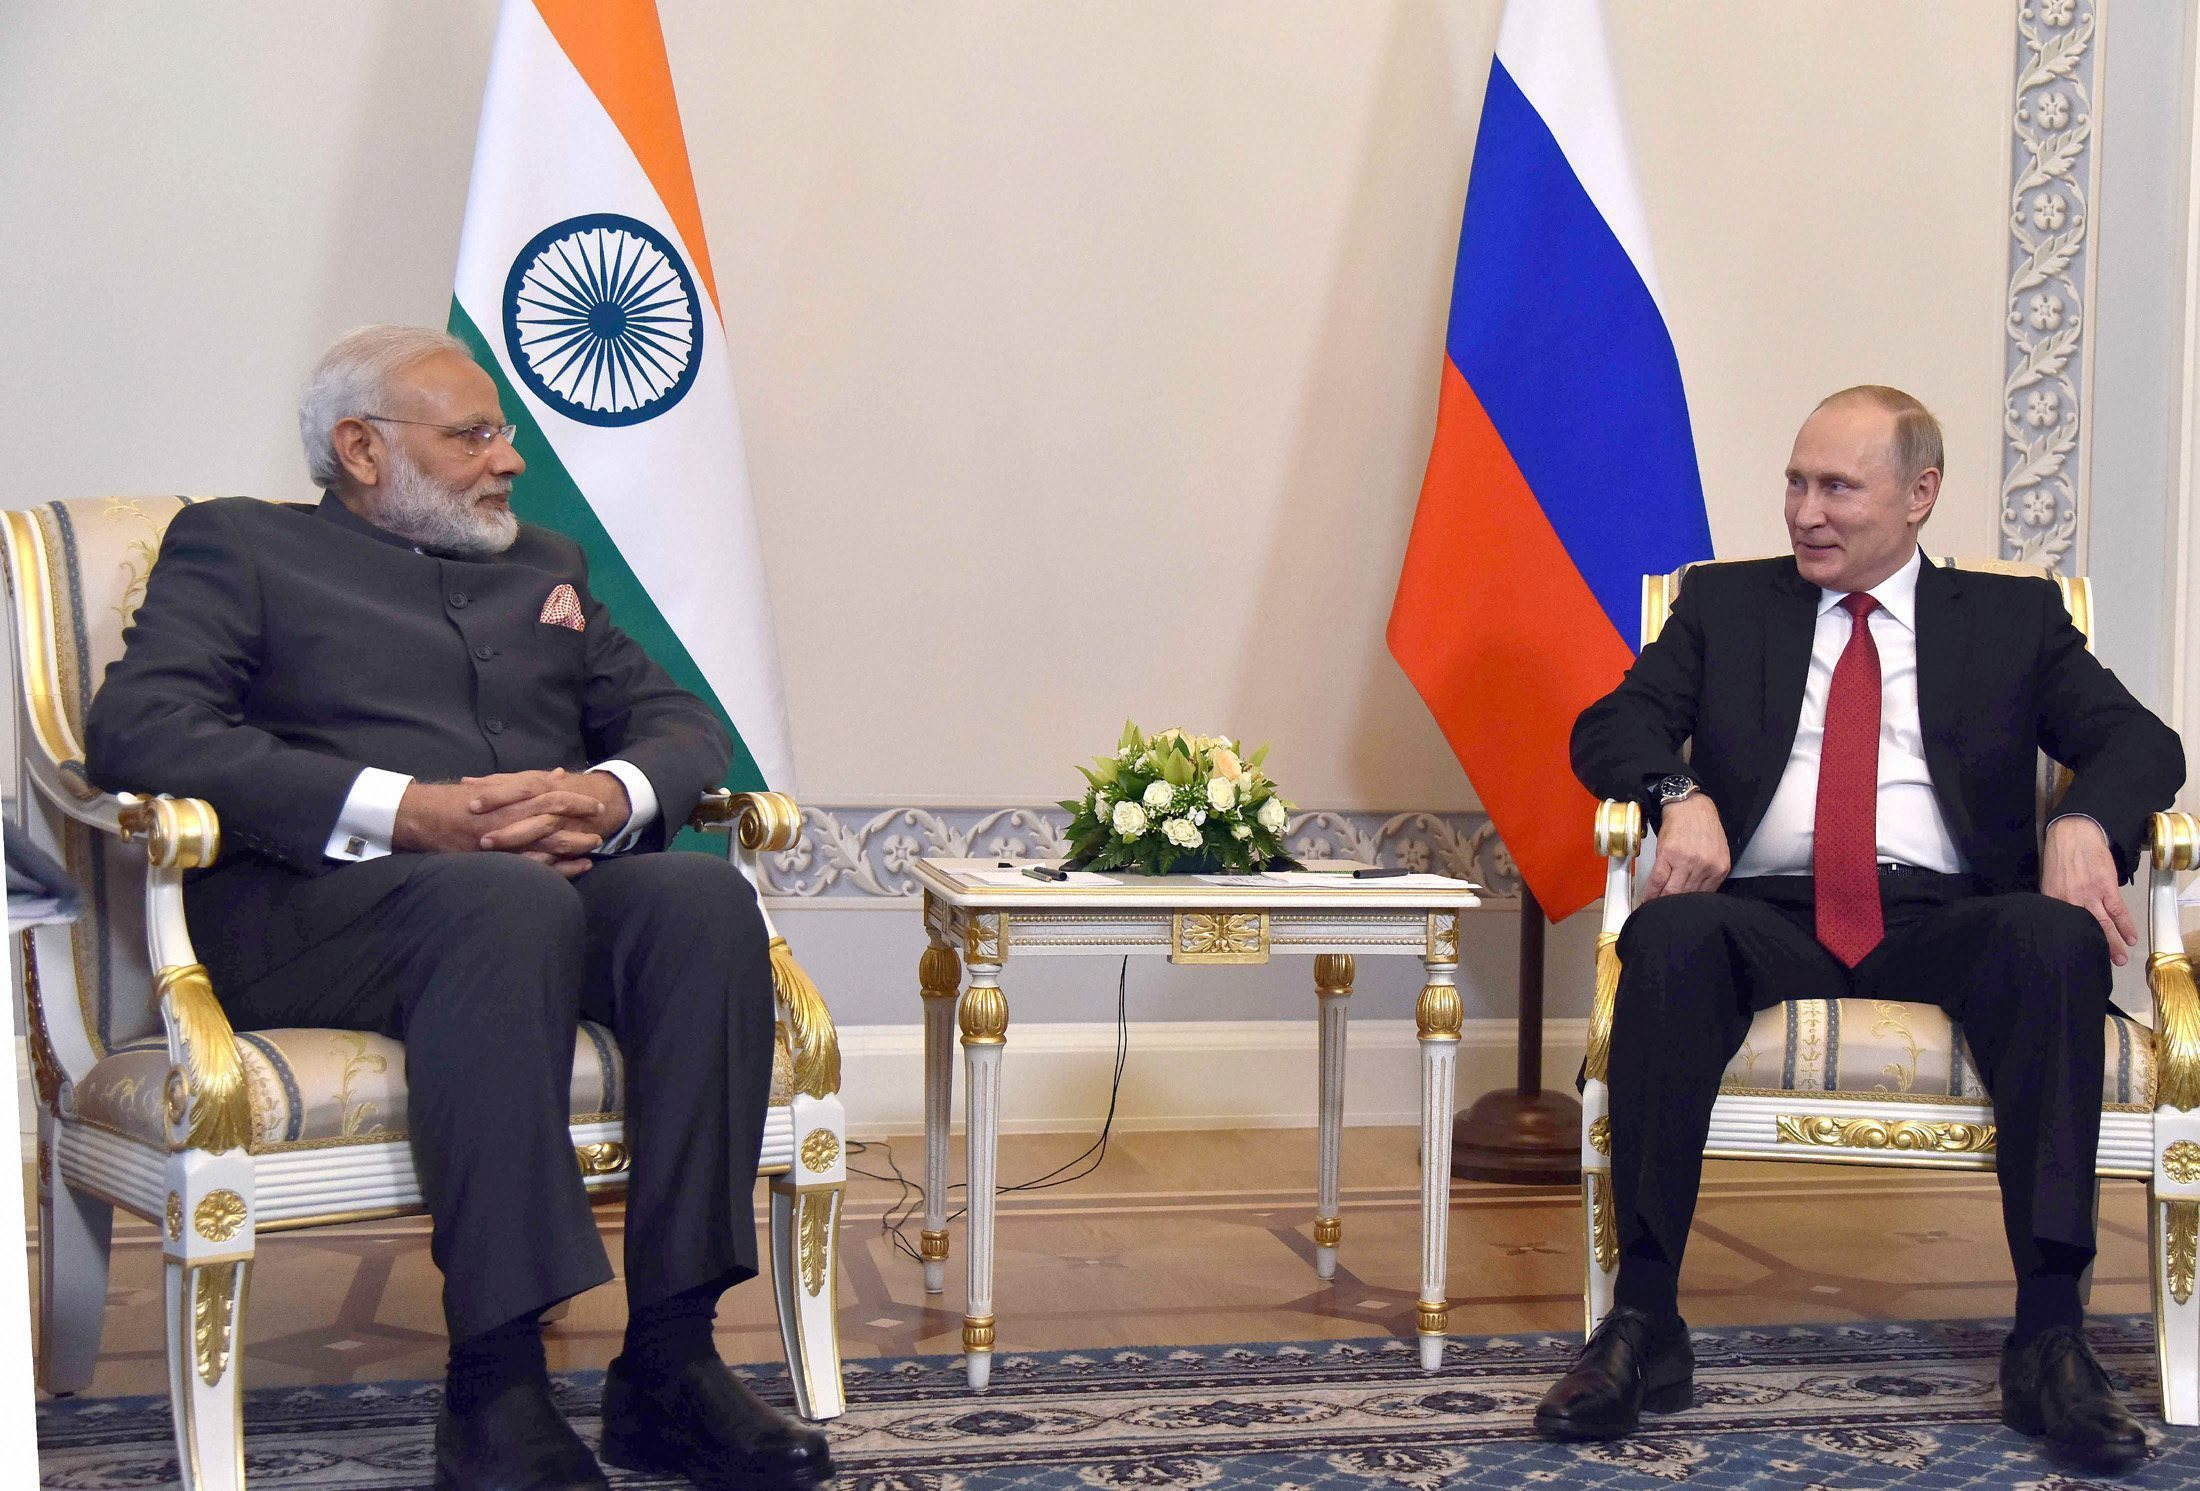 Modi, Putin Push Nuclear Ties But Fusion in Region a Part of Russian Mix